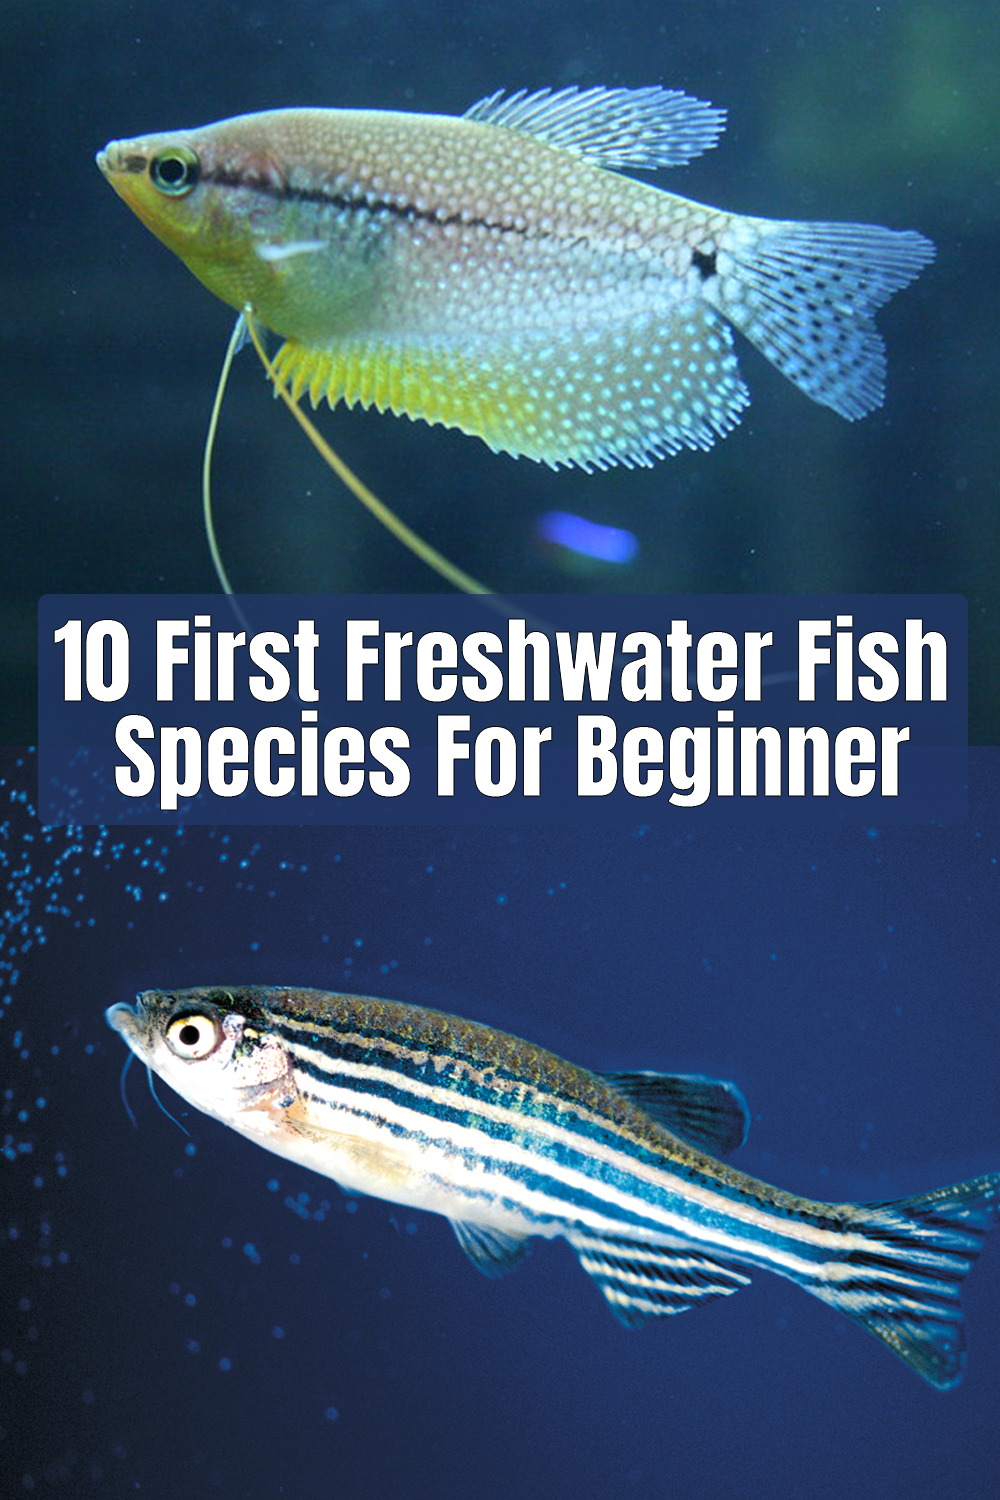 10 First Freshwater Fish Species For Beginner In 2020 Fish Freshwater Aquarium Fish Freshwater Fish